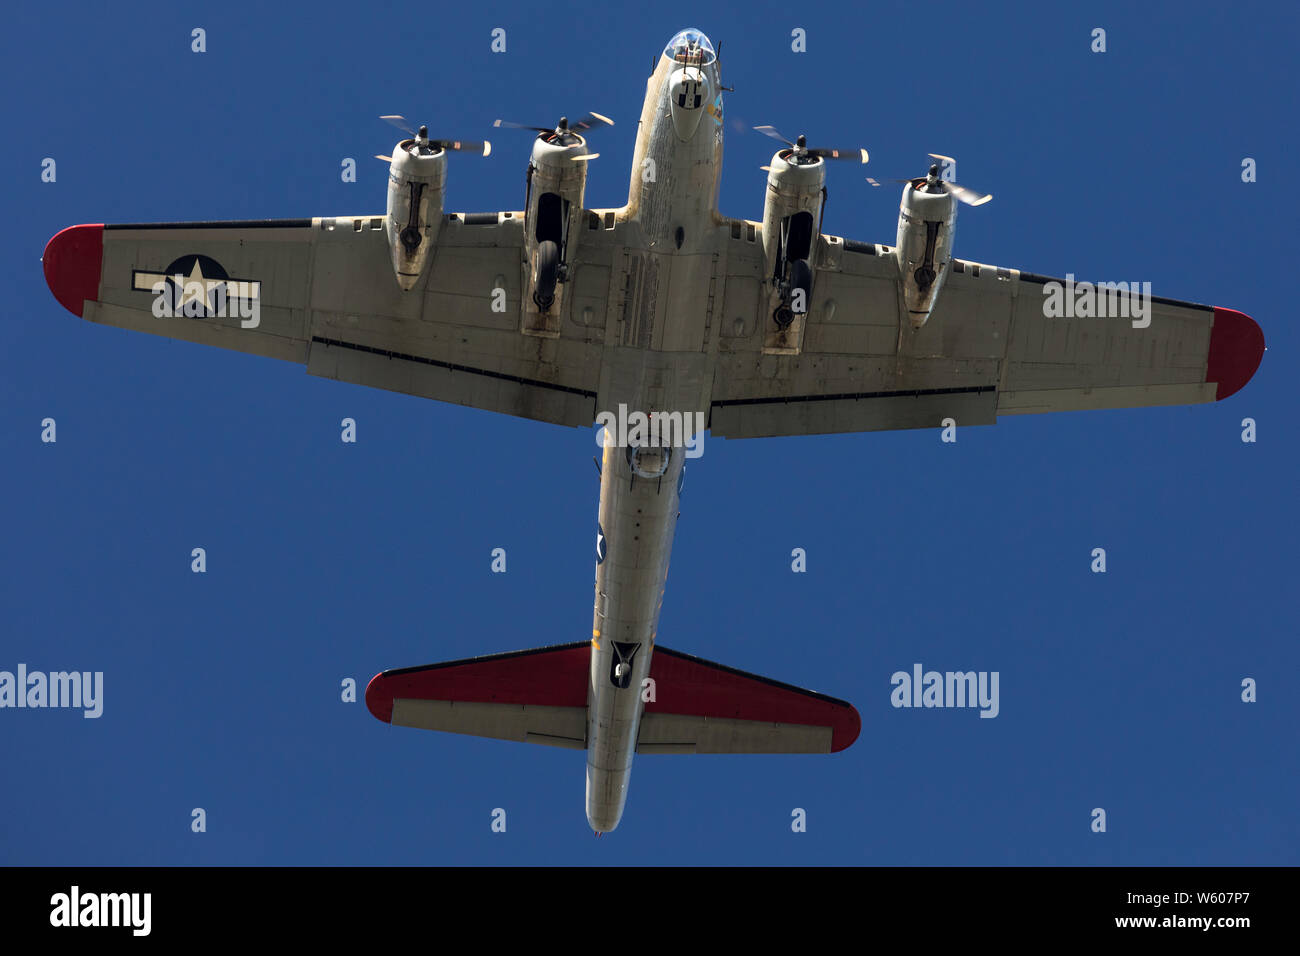 Low altitude pass of a Boeing B-17 Flying Fortress WWII bomber. Stock Photo